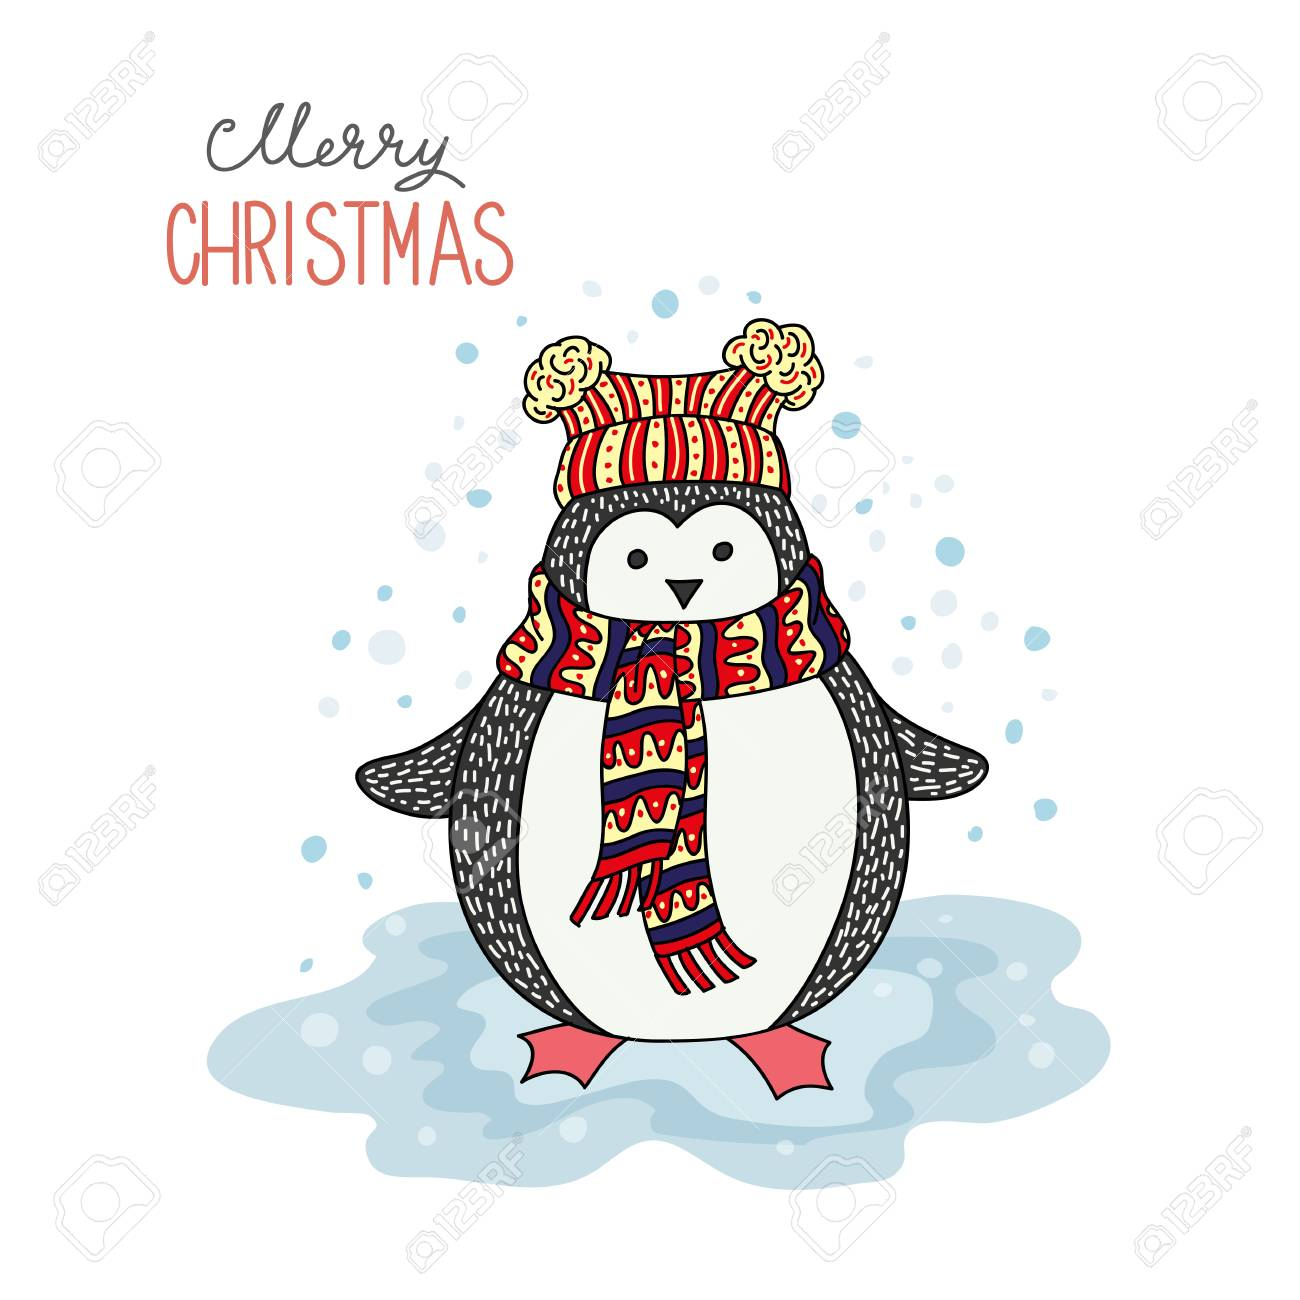 Cute Hand Drawn Penguin Merry Christmas Greetings Royalty Free